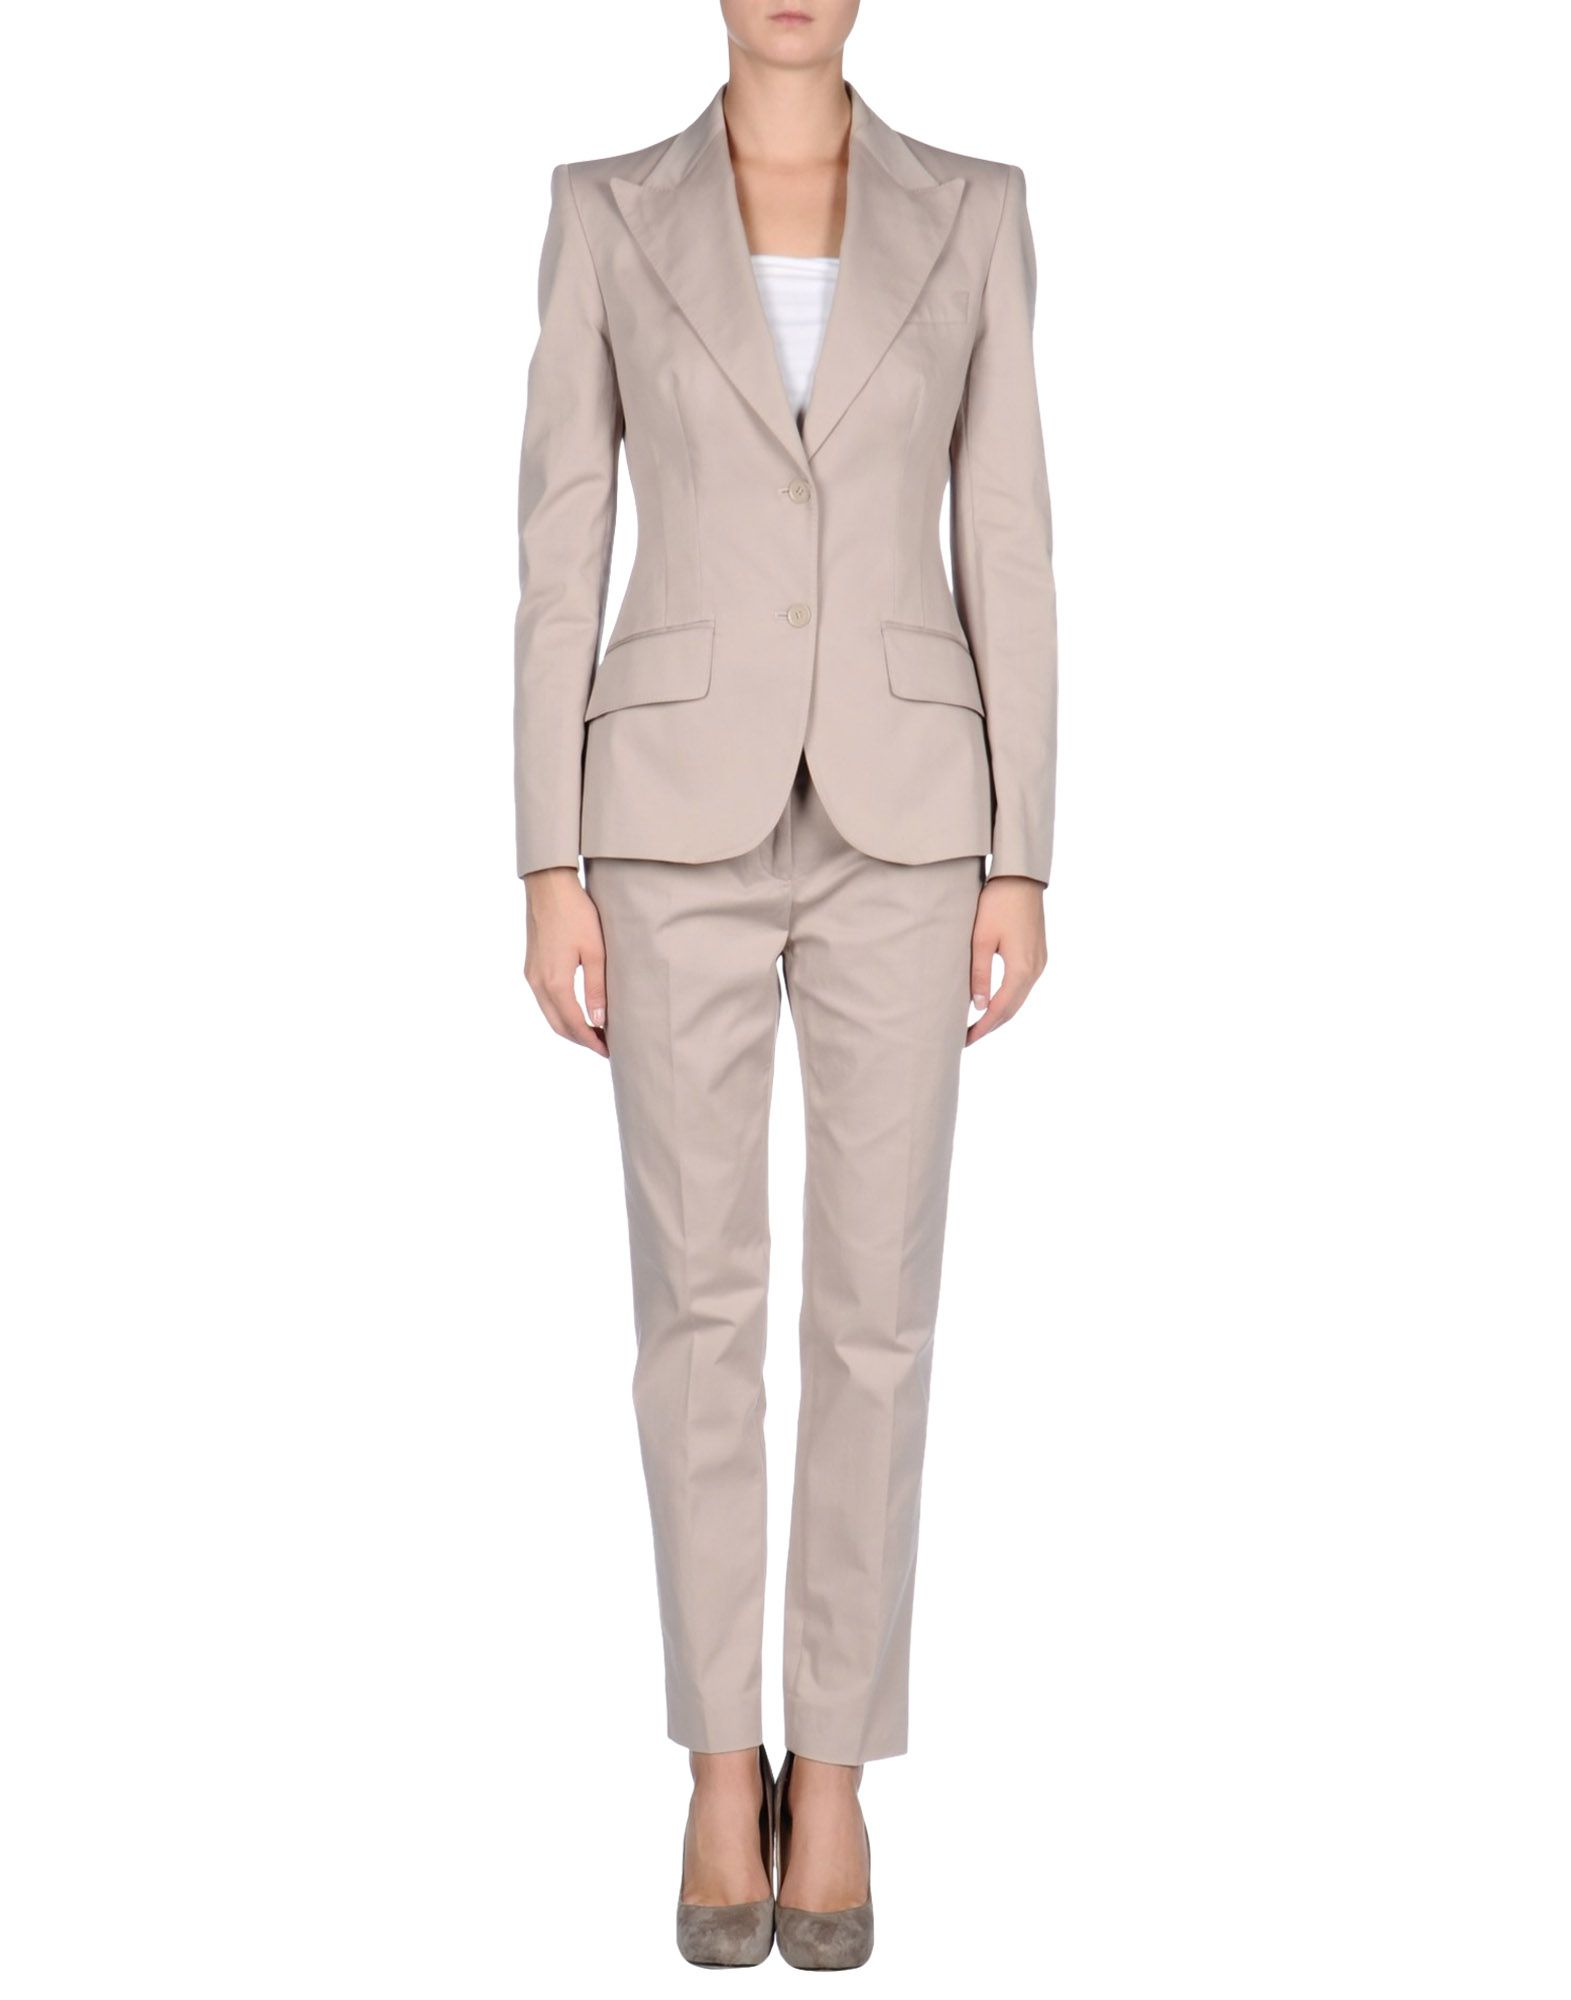 Shop this seasons women's work apparel, including versatile suiting, dresses, sweaters, blouses, perfectly fitting pants and more at New York & Company.